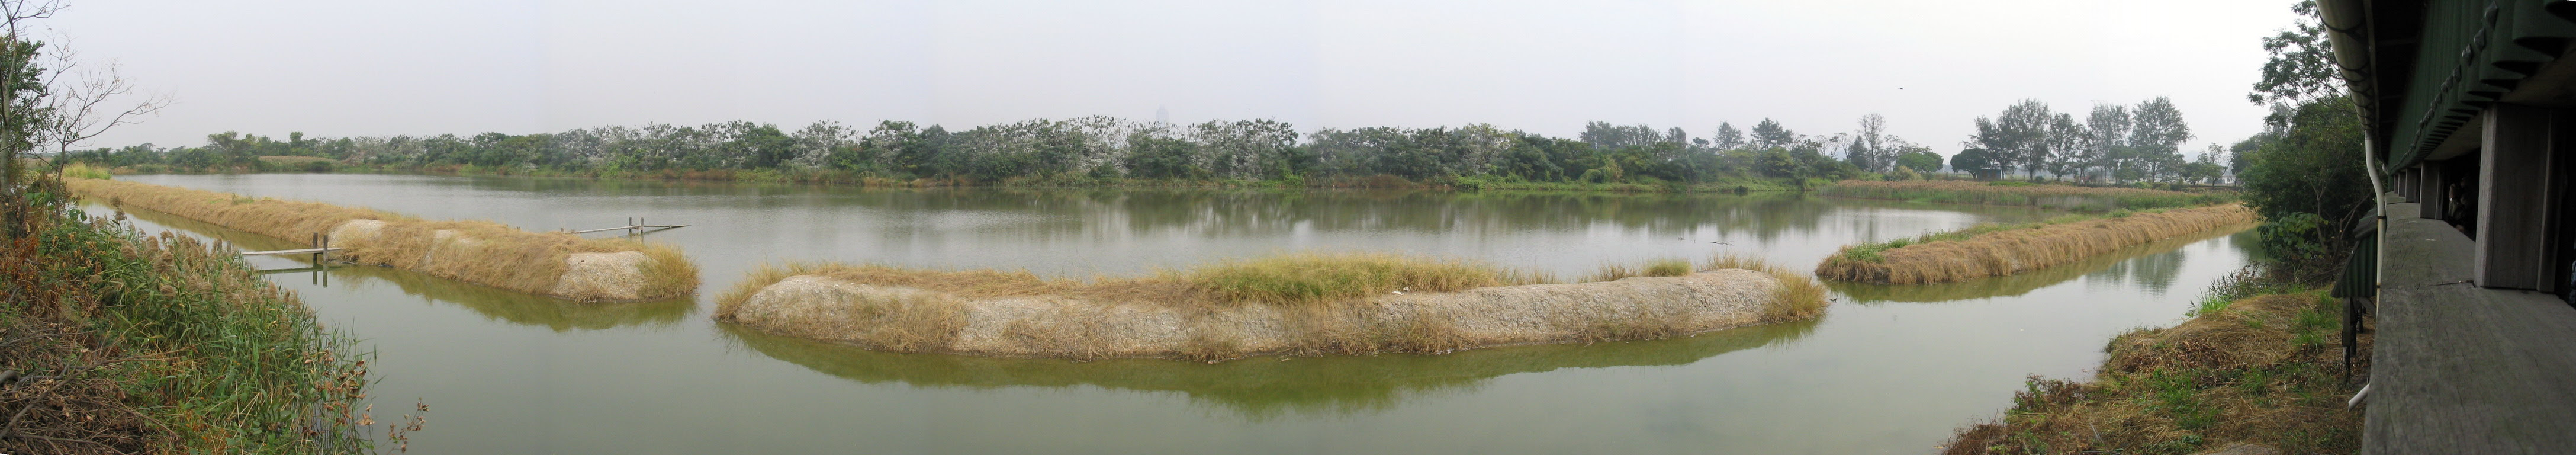 http://upload.wikimedia.org/wikipedia/commons/8/80/Mai_Po_Nature_Reserve.jpg